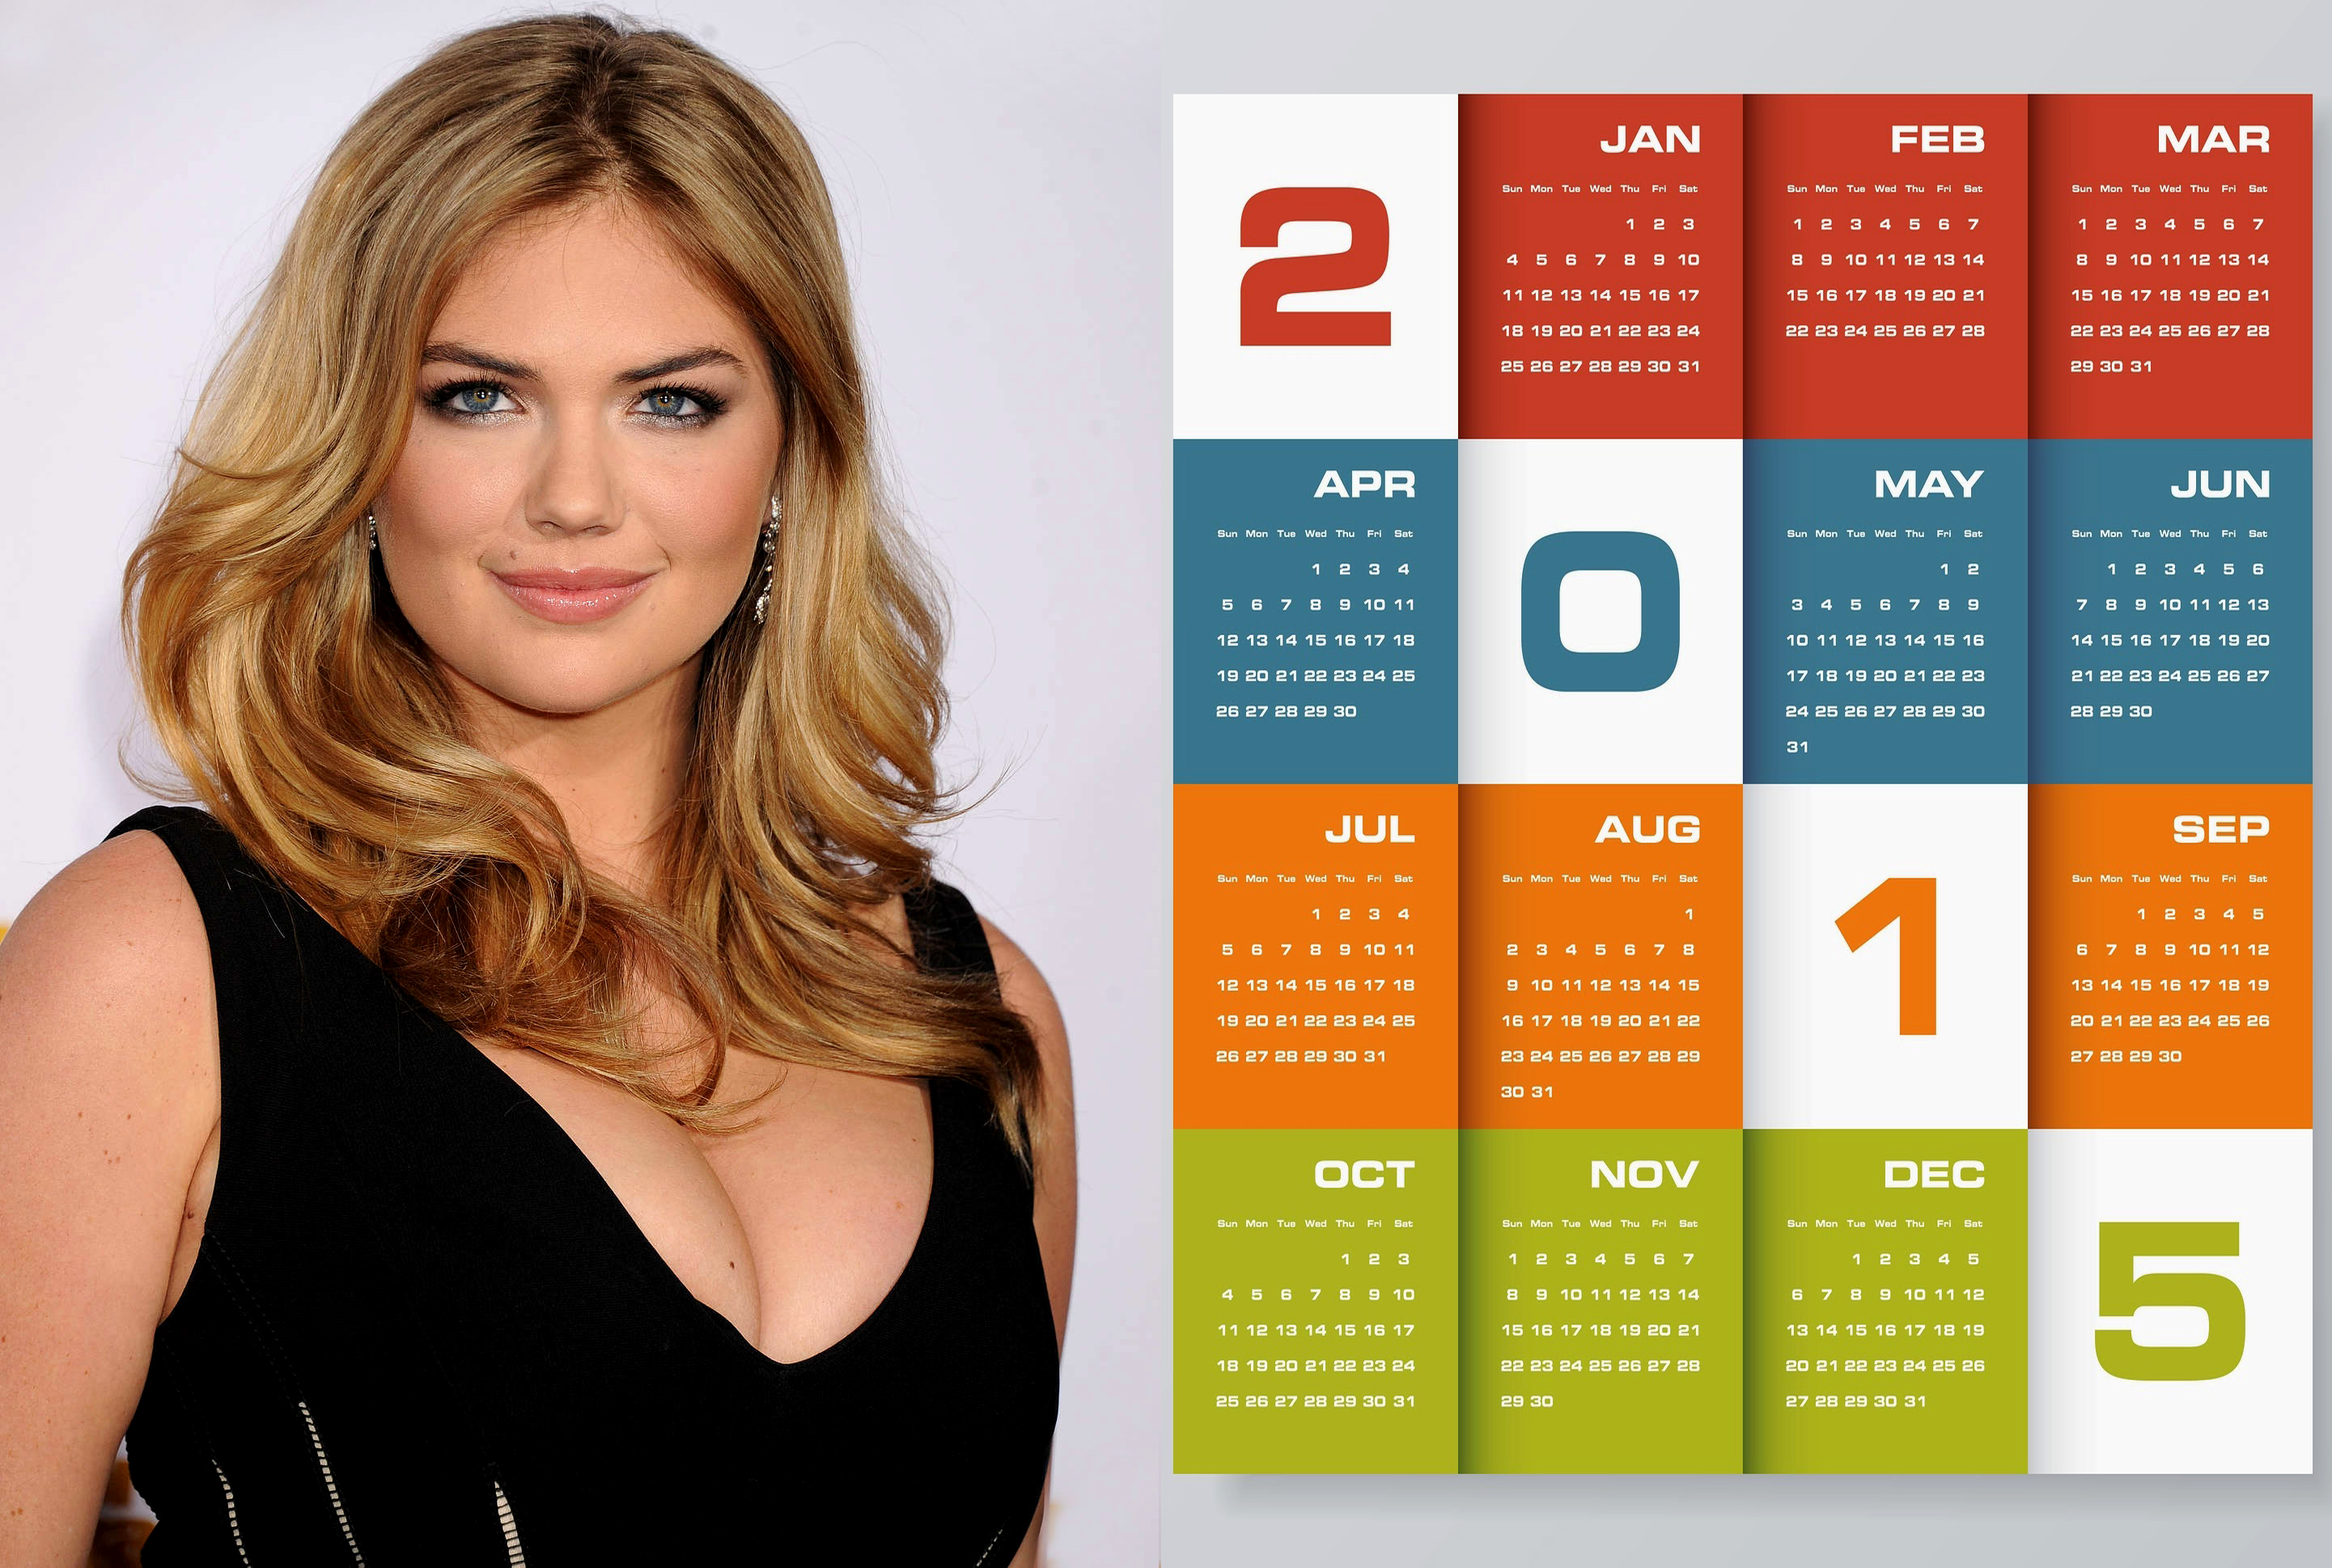 kate upton black dress wallpaper calendar 2015